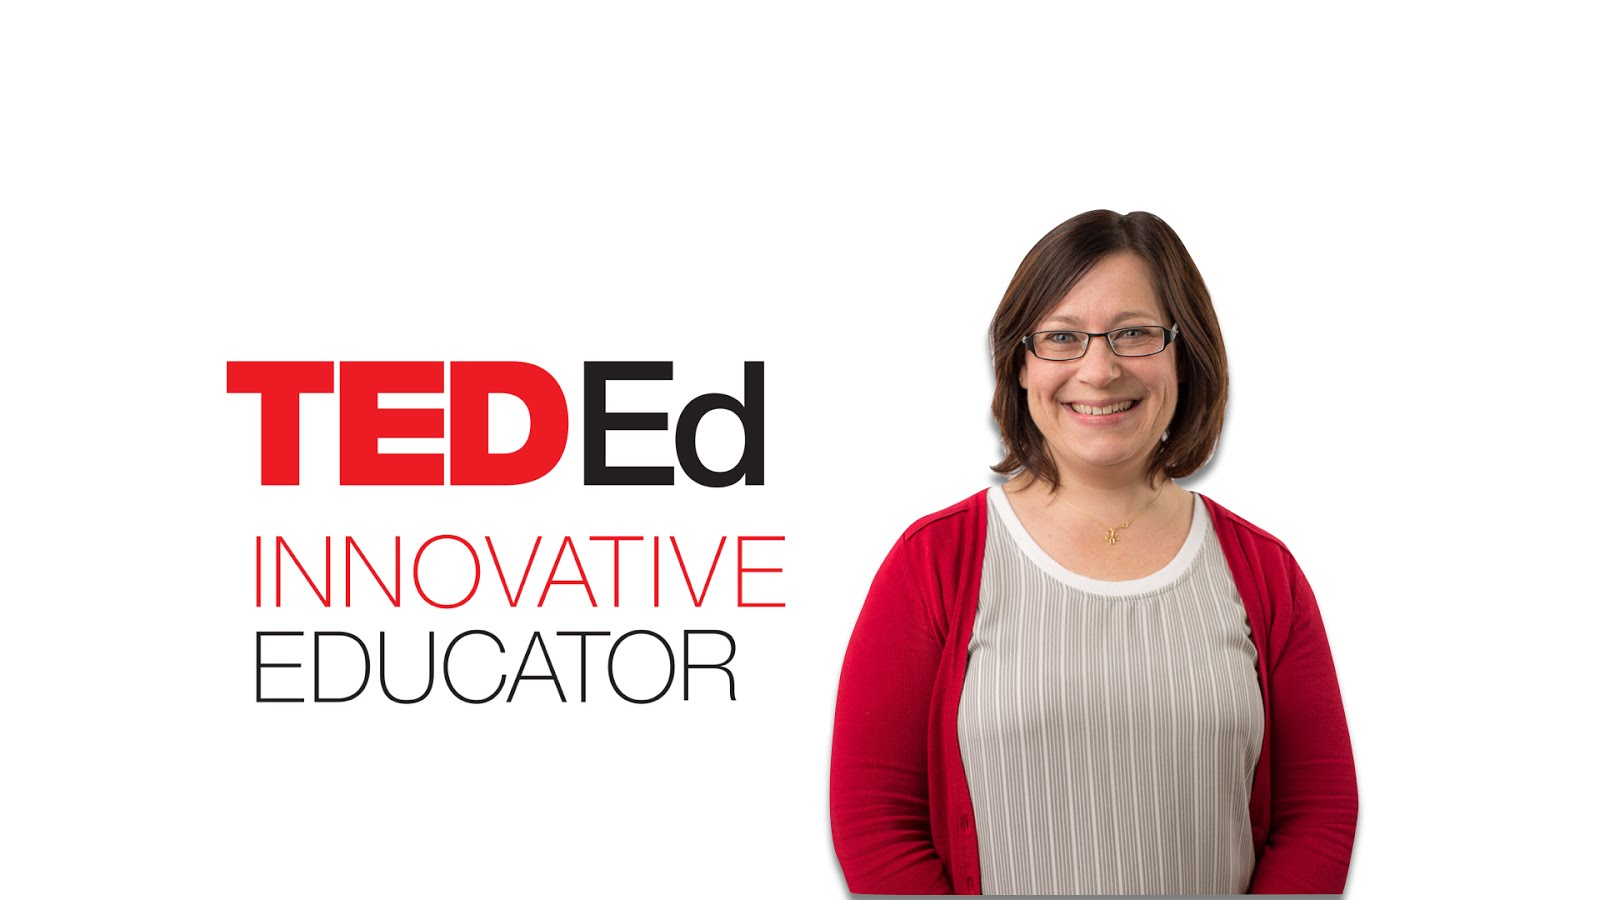 I'm a TED-Ed Innovative Educator